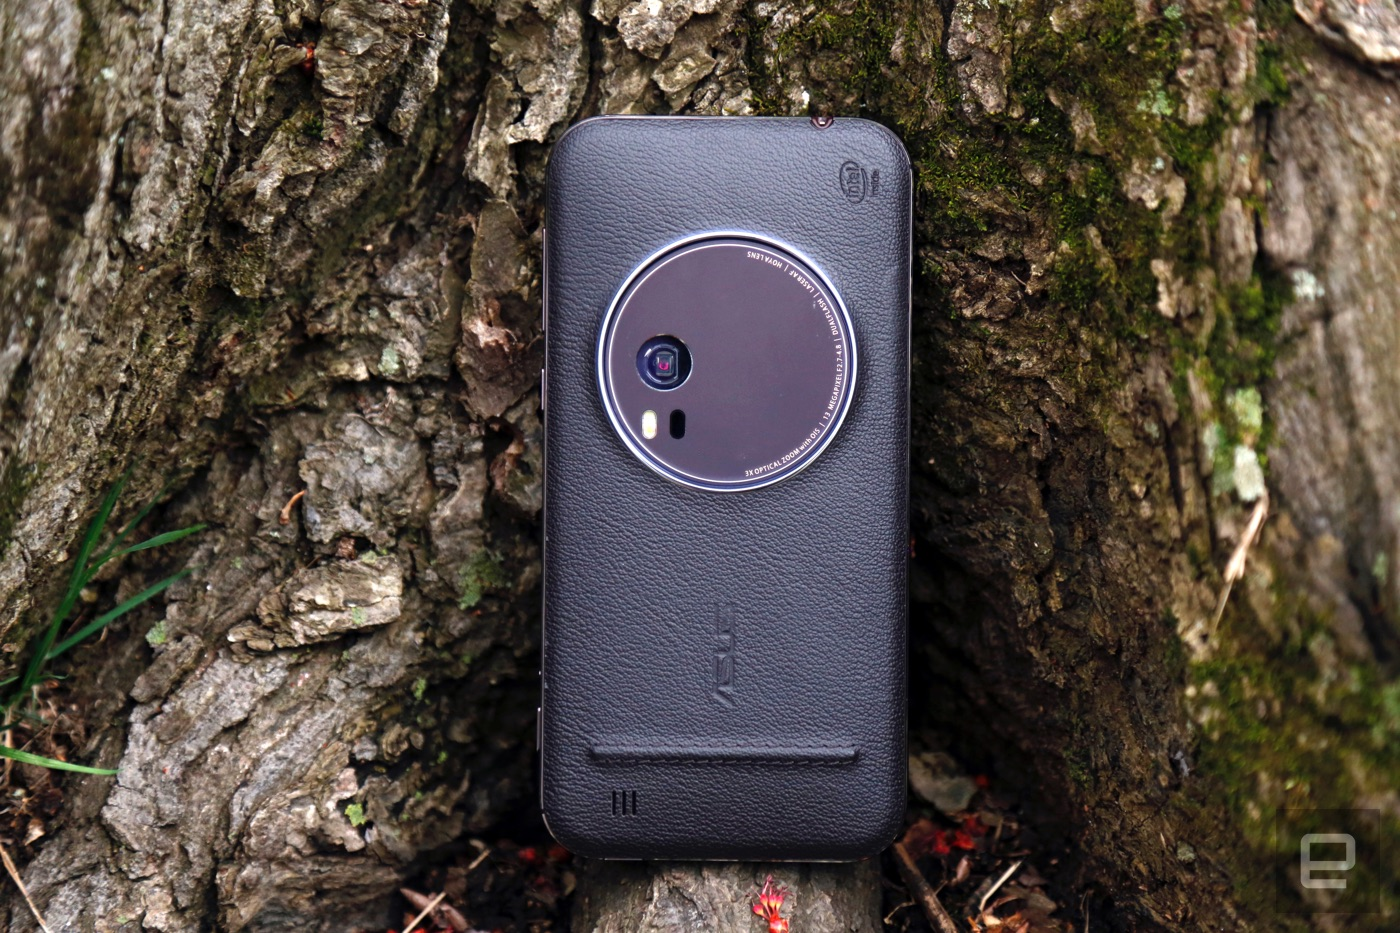 ASUS' ZenFone Zoom is ultimatelyintegrated held again with the aid of a mediocre sensor